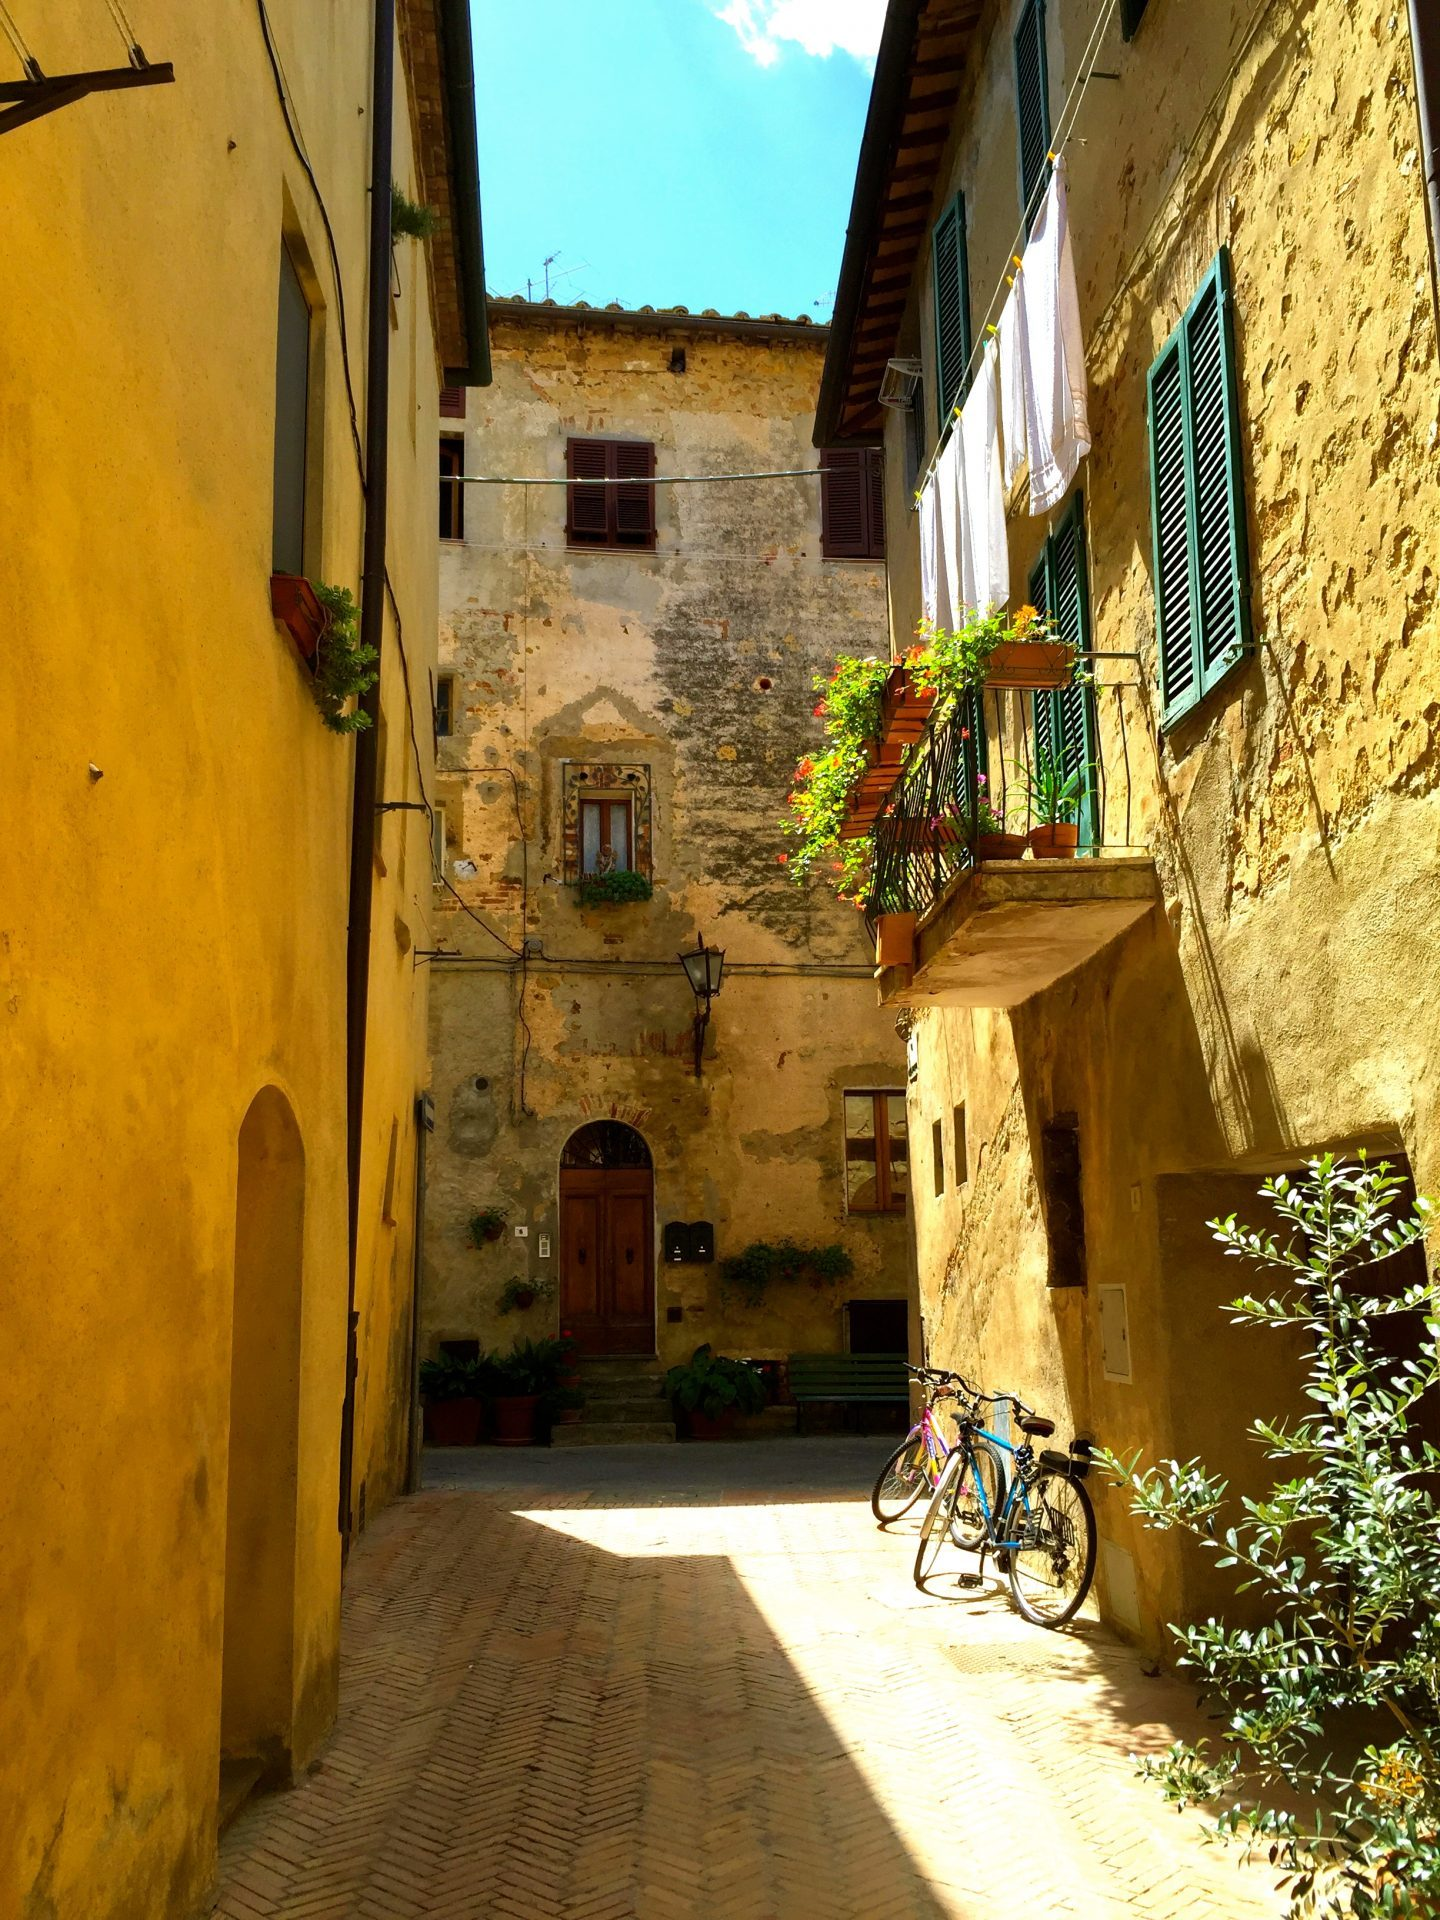 Walking down an alleyway in Pienza Tuscany.